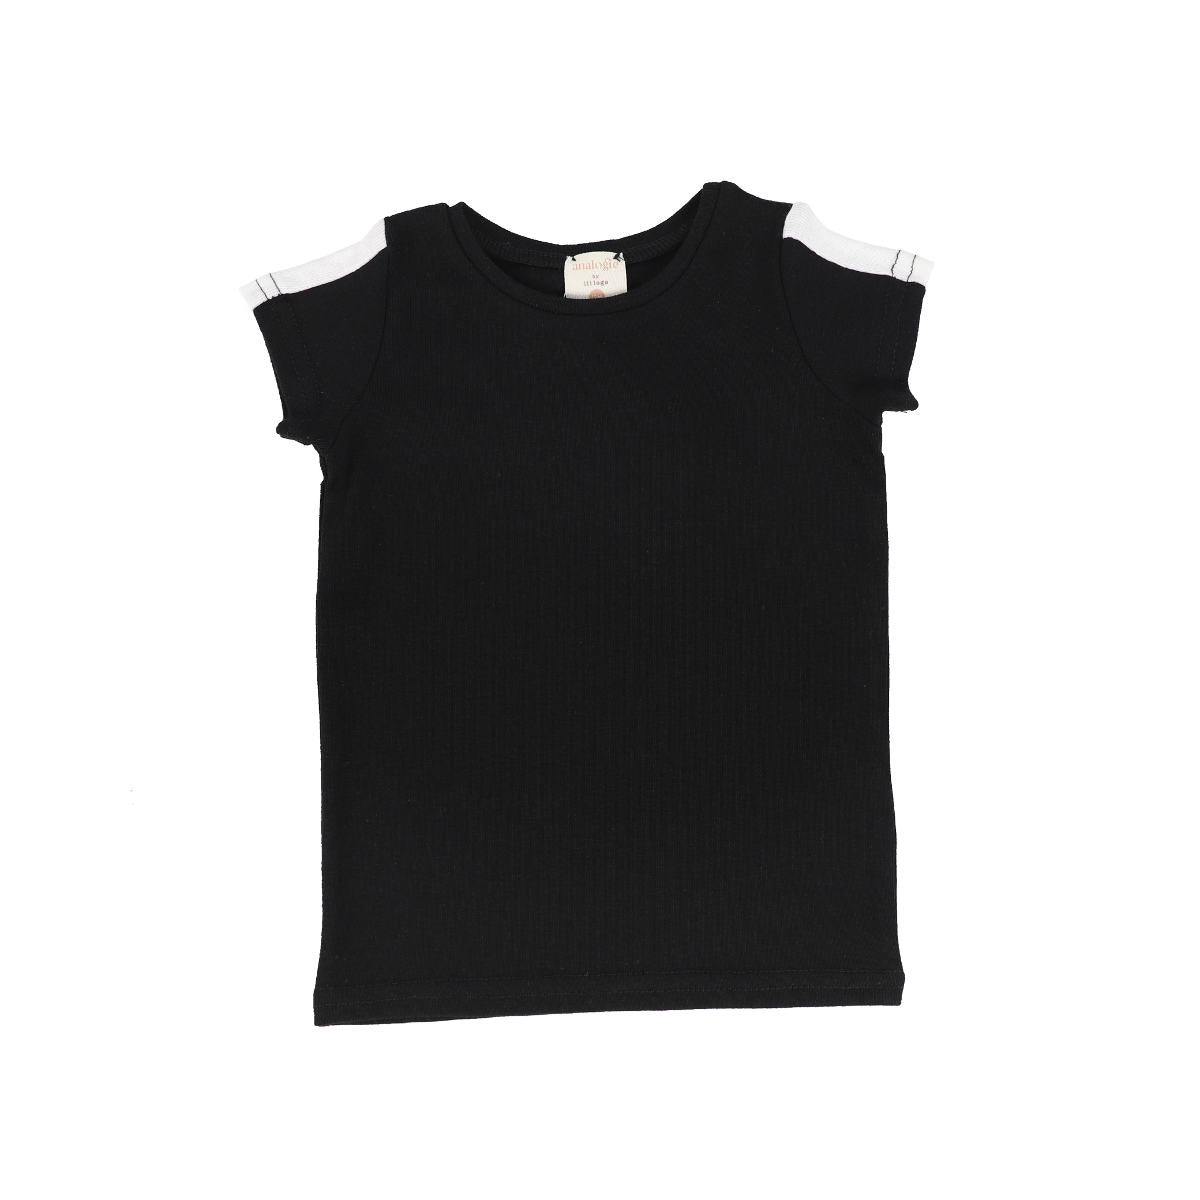 Analogie BlackWhite Short Sleeve Linear Tee